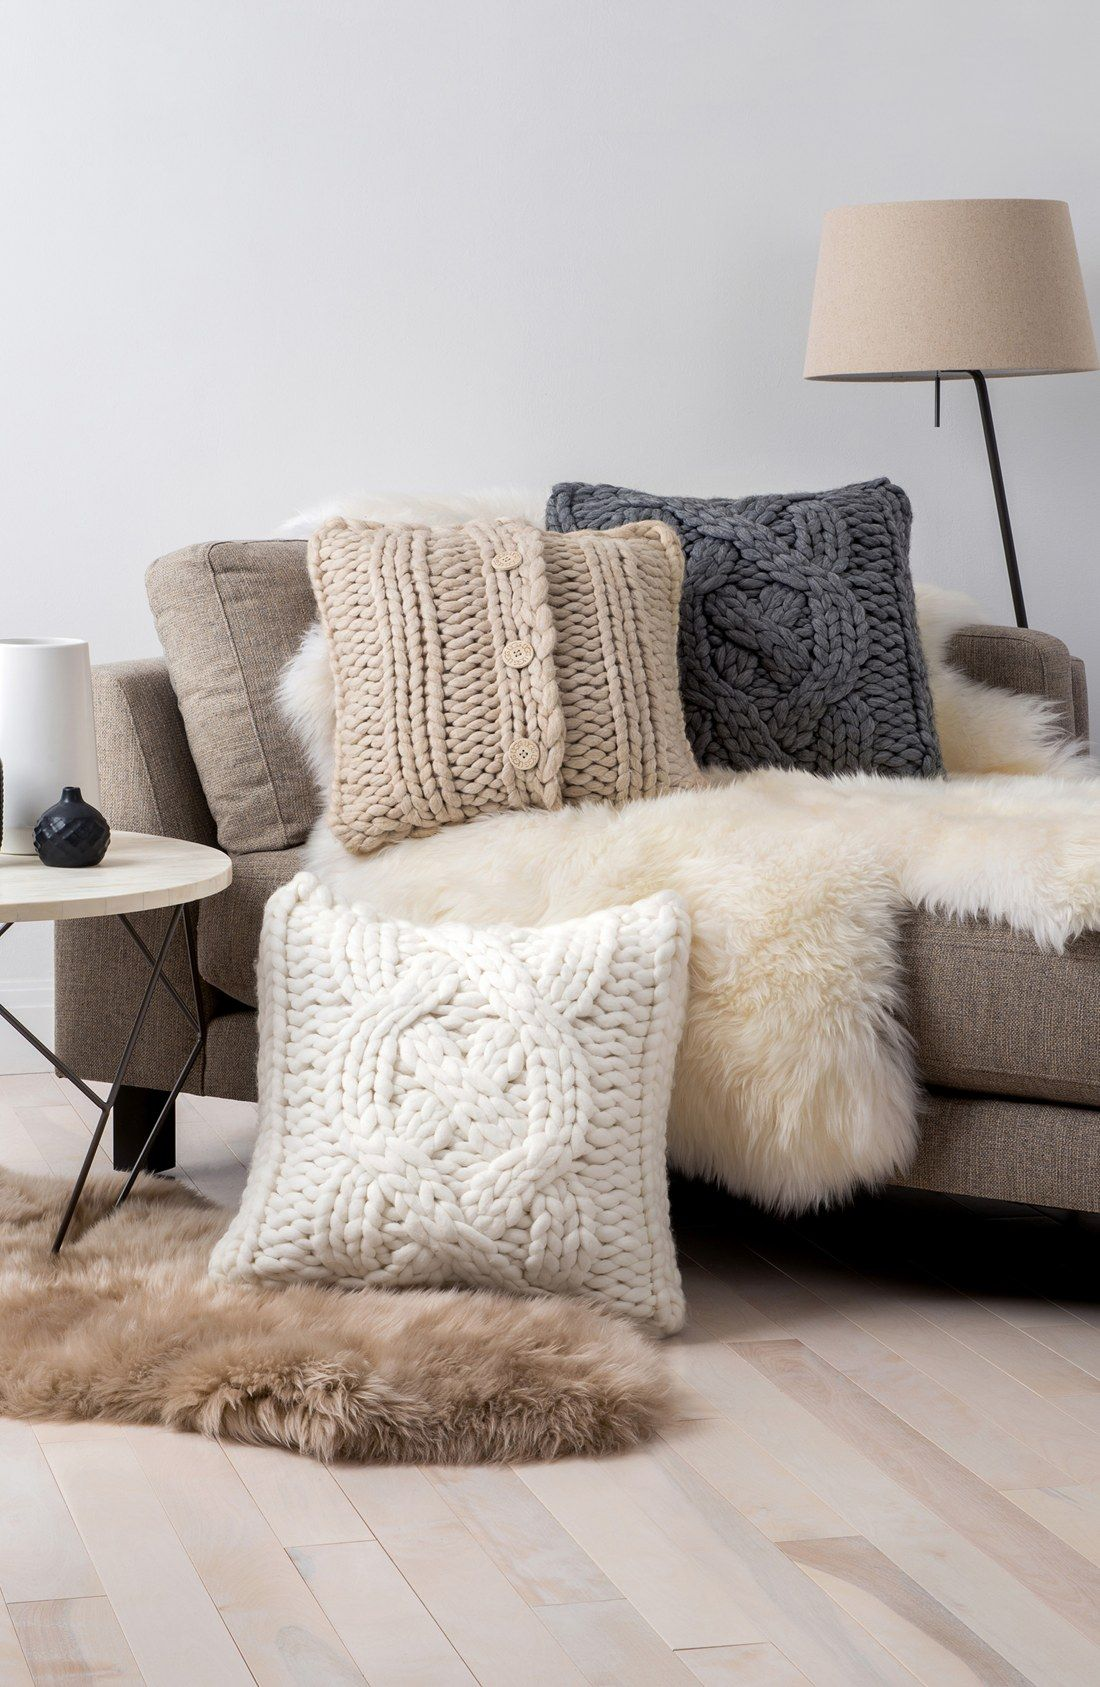 ugg Australia Oversize Cable Knit Pillow nordstrom | INTERIORS ...